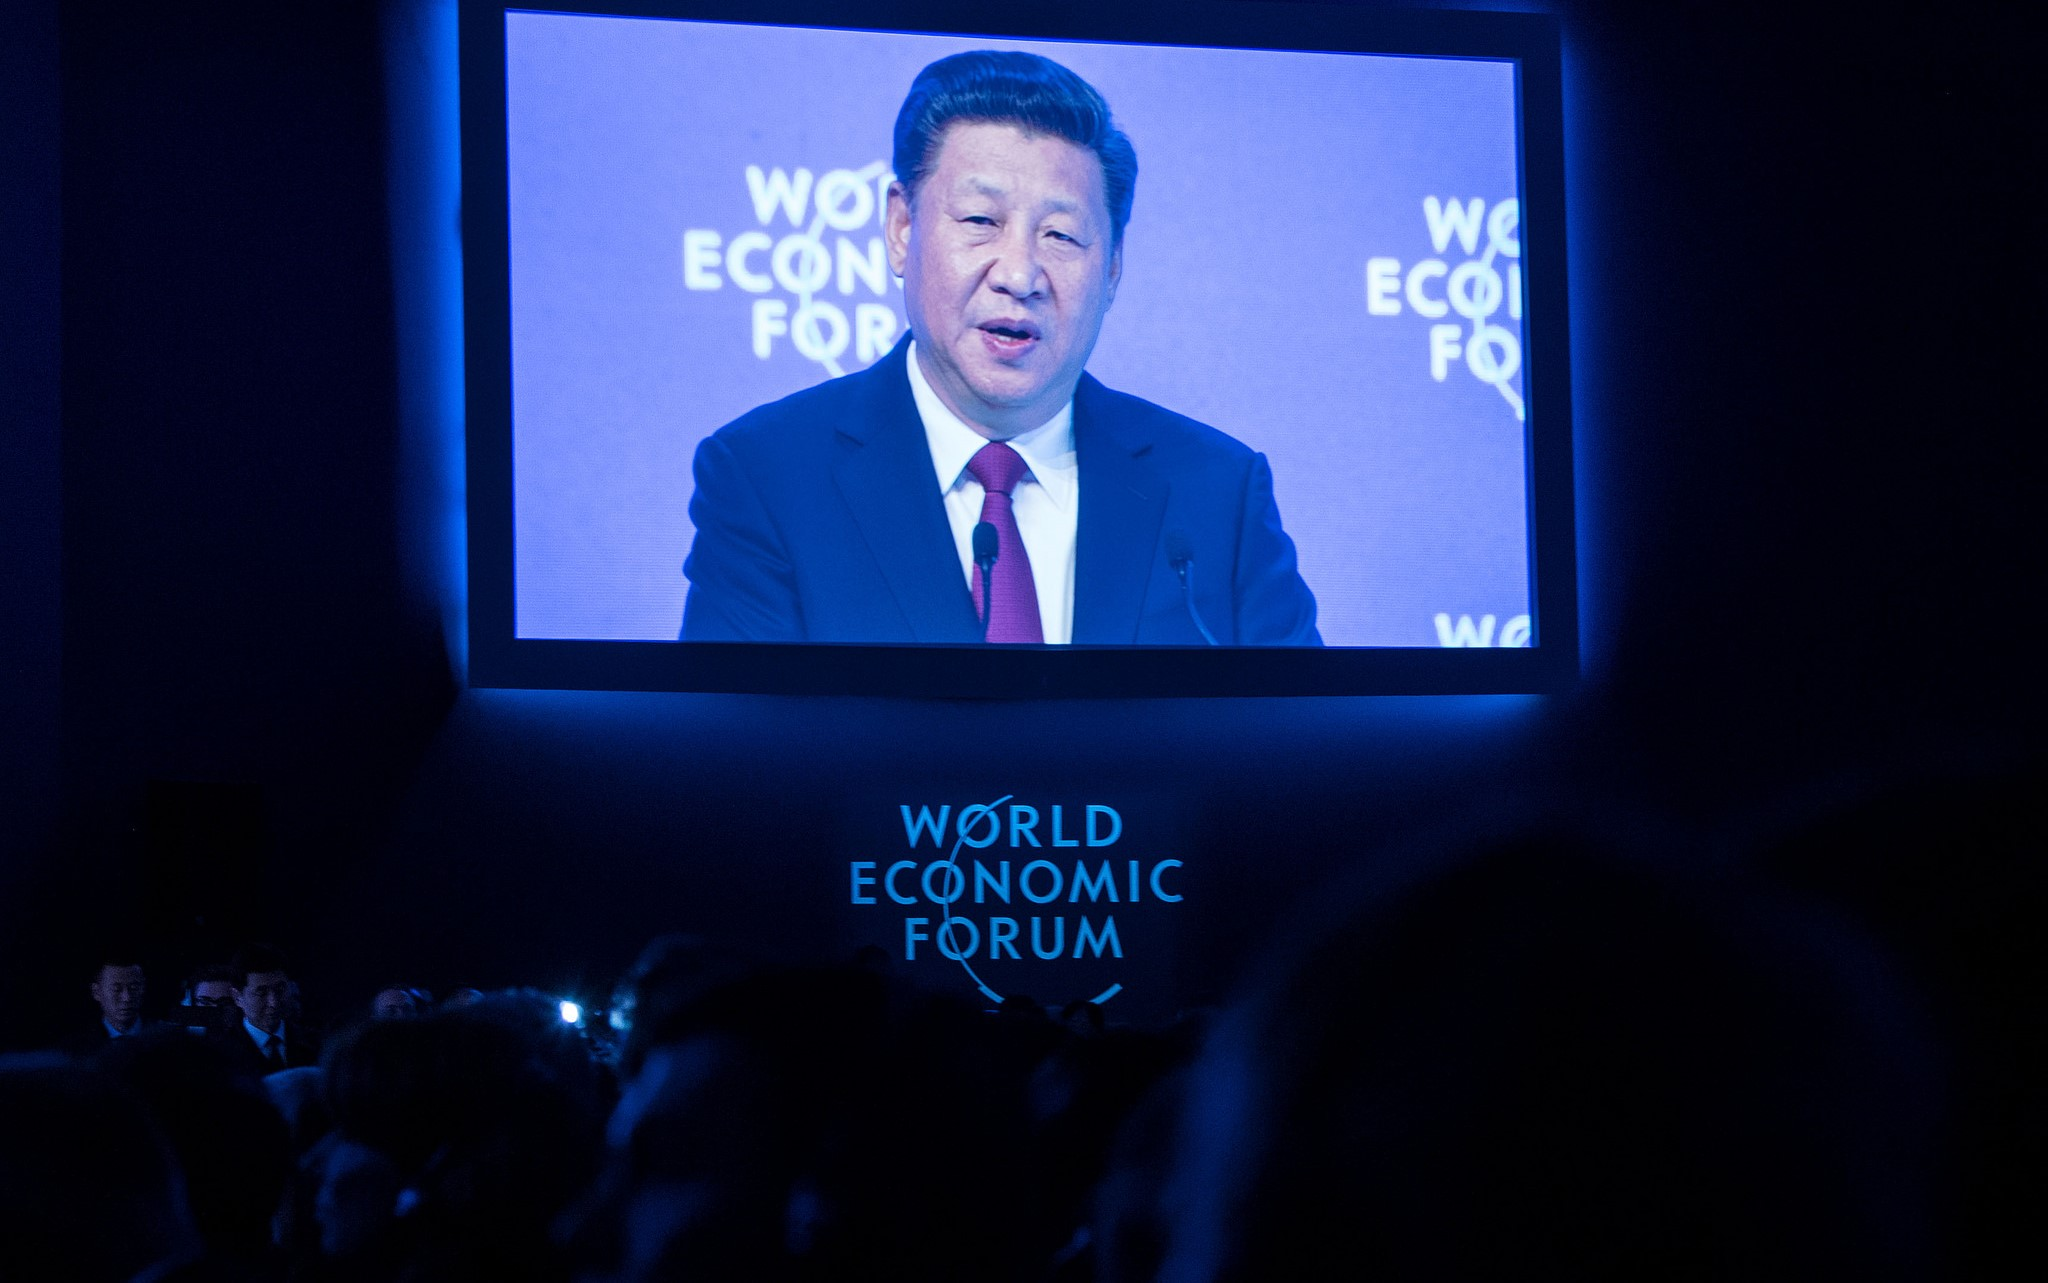 Chinese President Xi Jinping addressing the World Economic Forum at Davos, Switzerland, 2017 (Photo: Flickr/World Economic Forum)